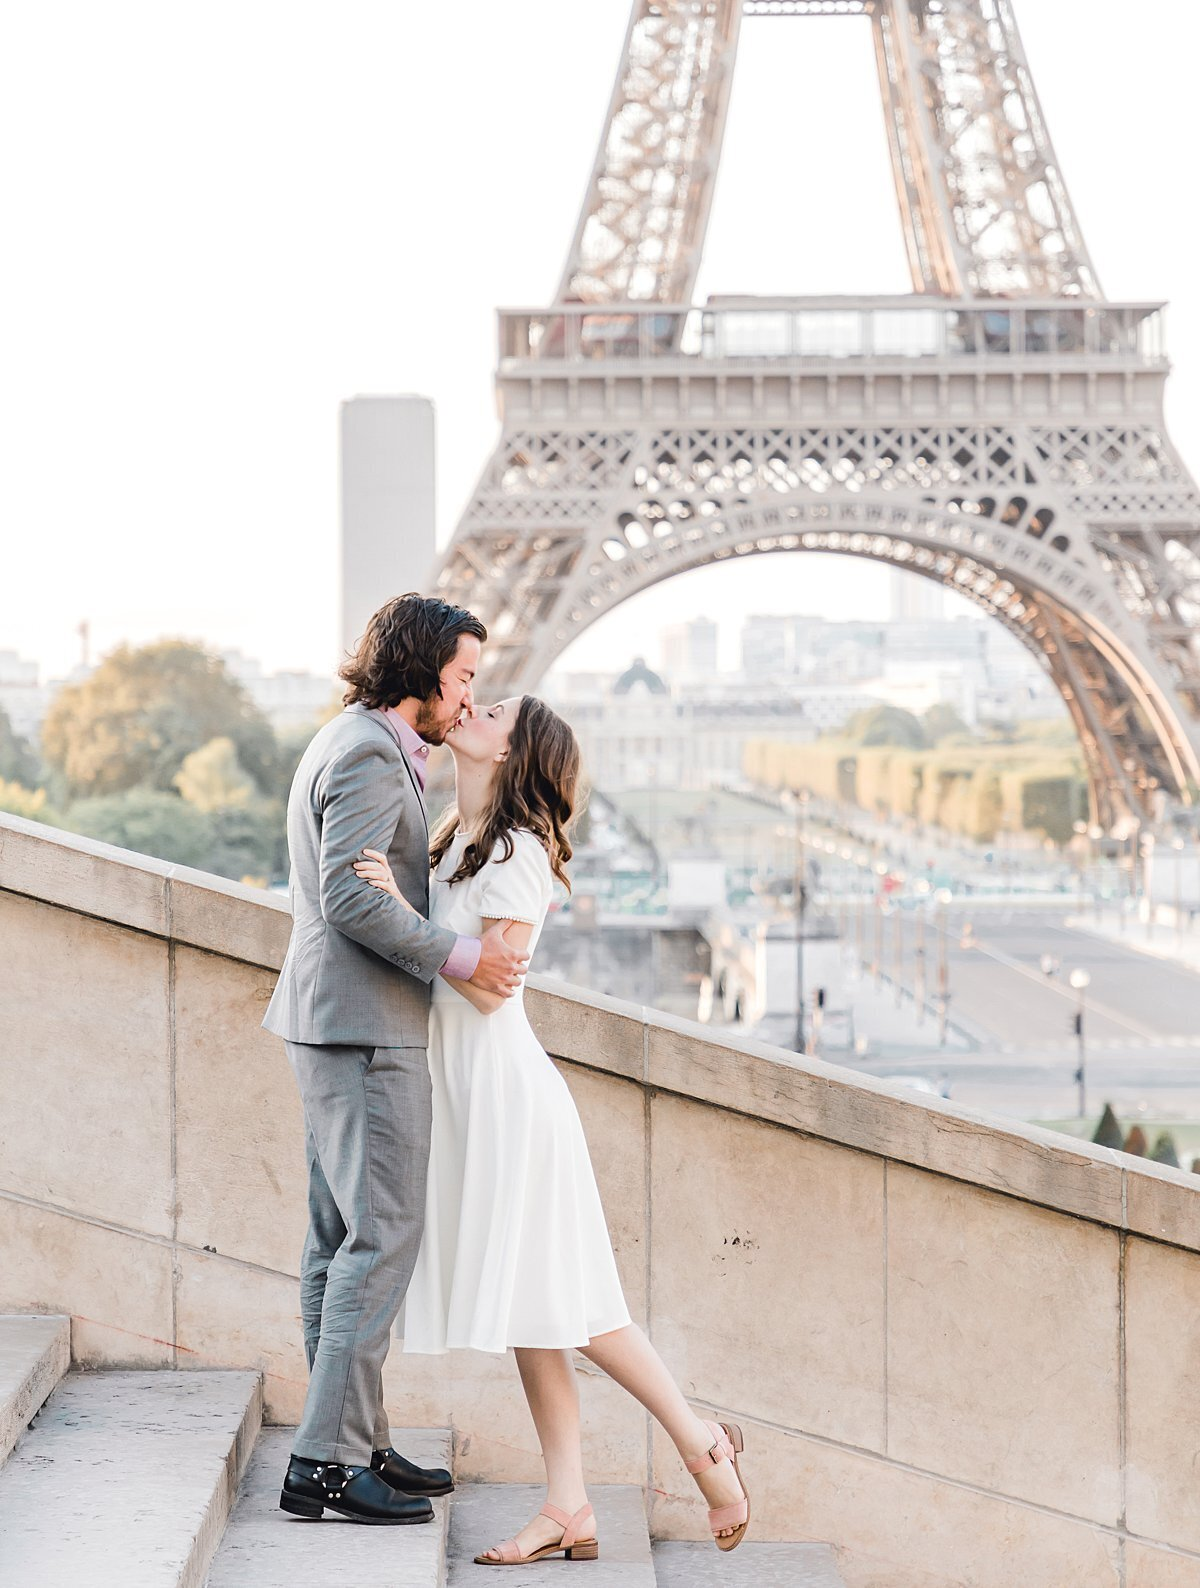 paris-honeymoon-photoshoot-4